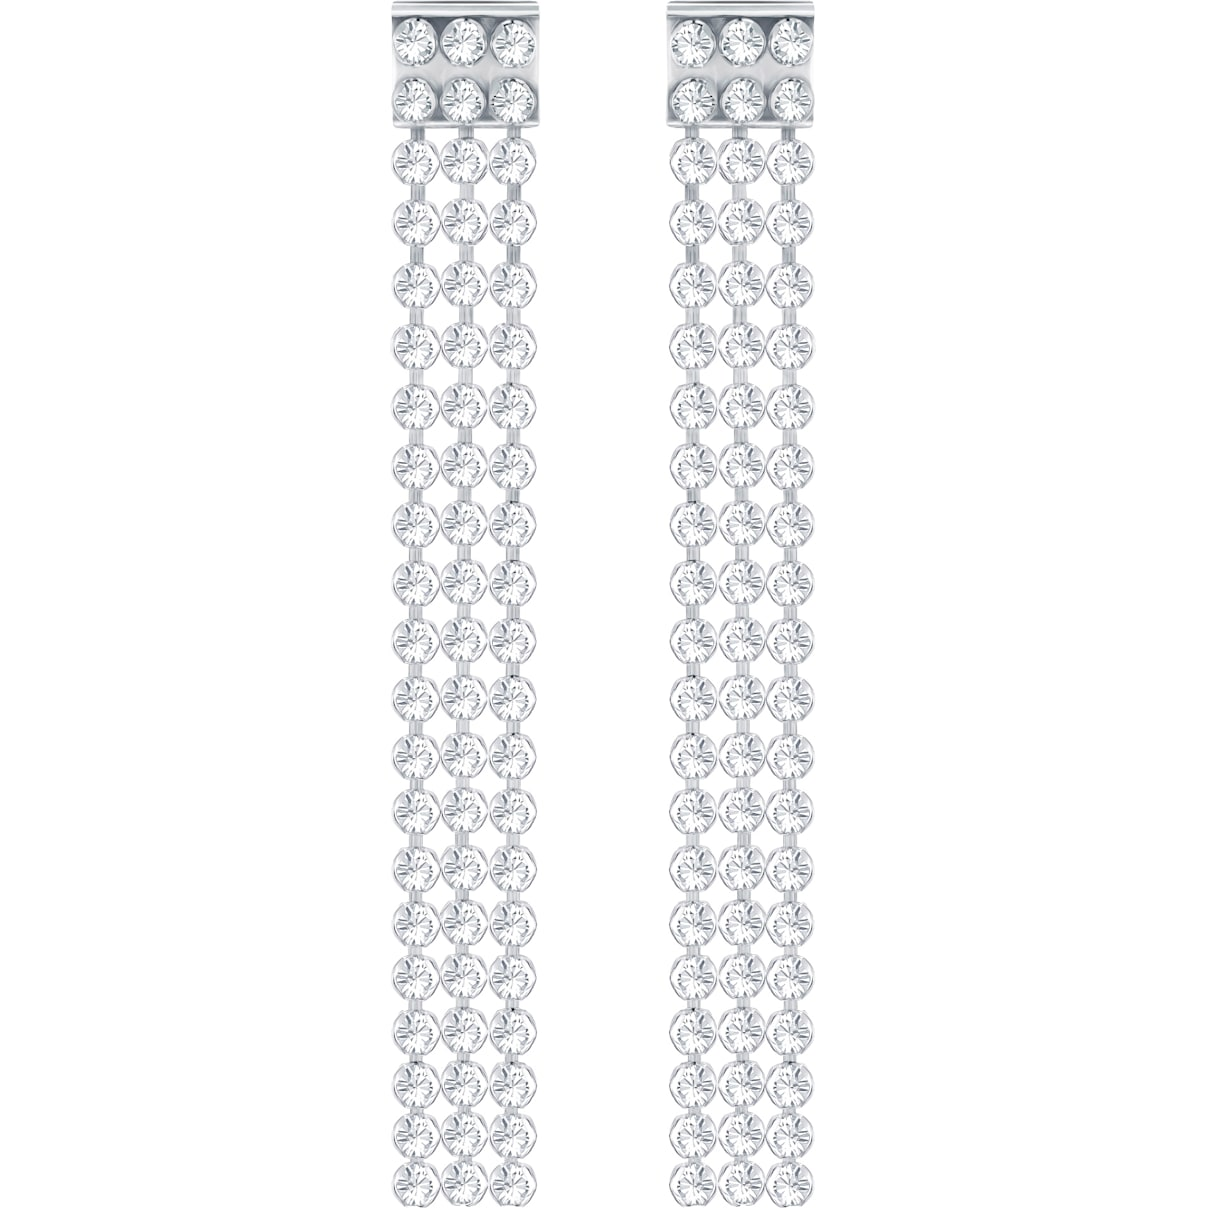 Swarovski Fit Long Pierced Earrings, White, Palladium Plating